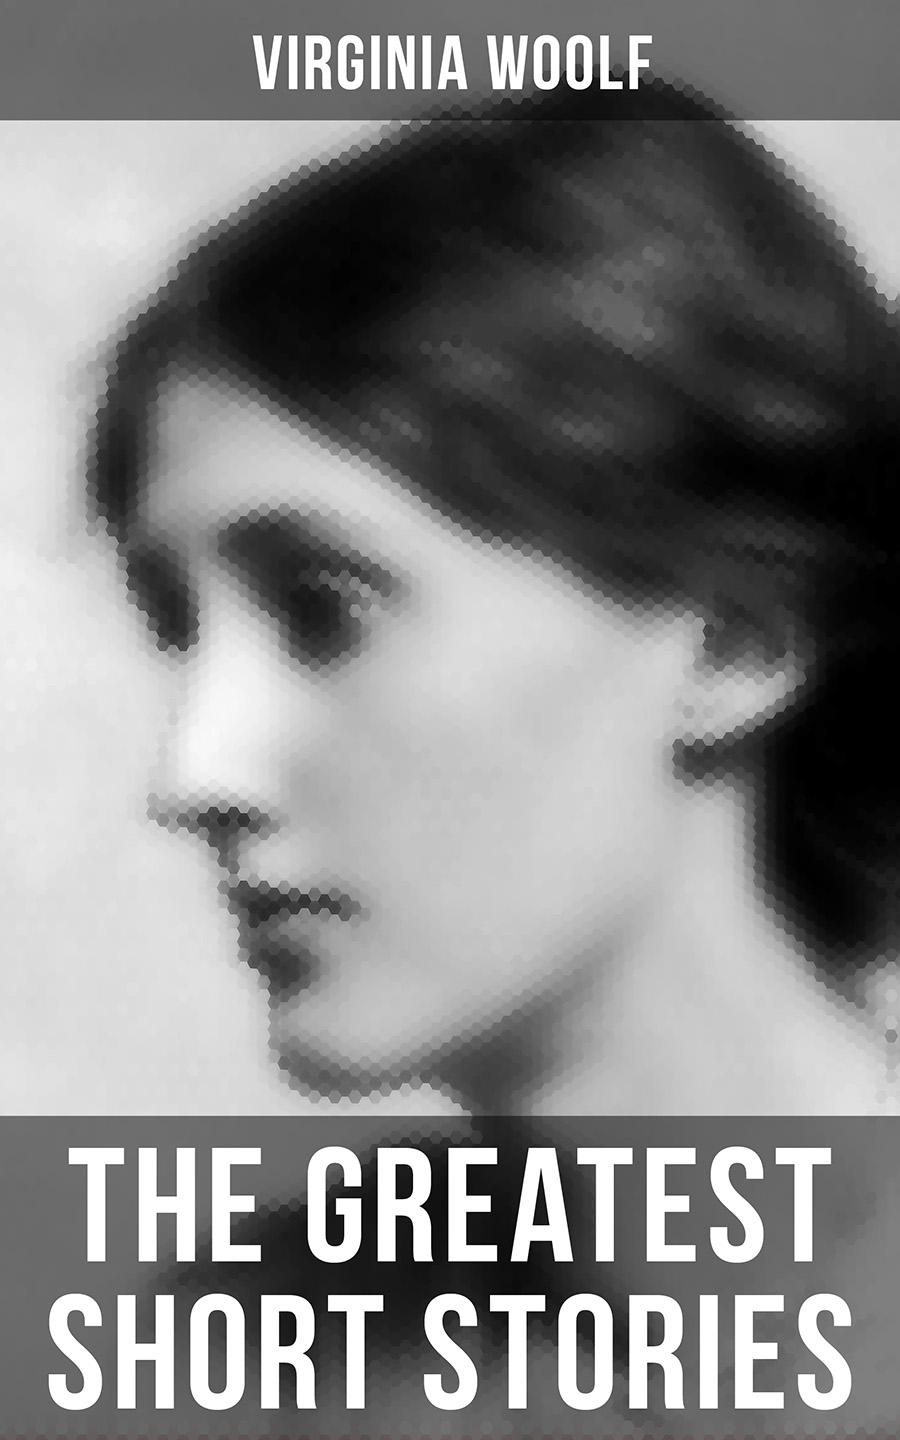 Virginia Woolf The Greatest Short Stories of Virginia Woolf virginia woolf the complete novels of virginia woolf 9 unabridged novels